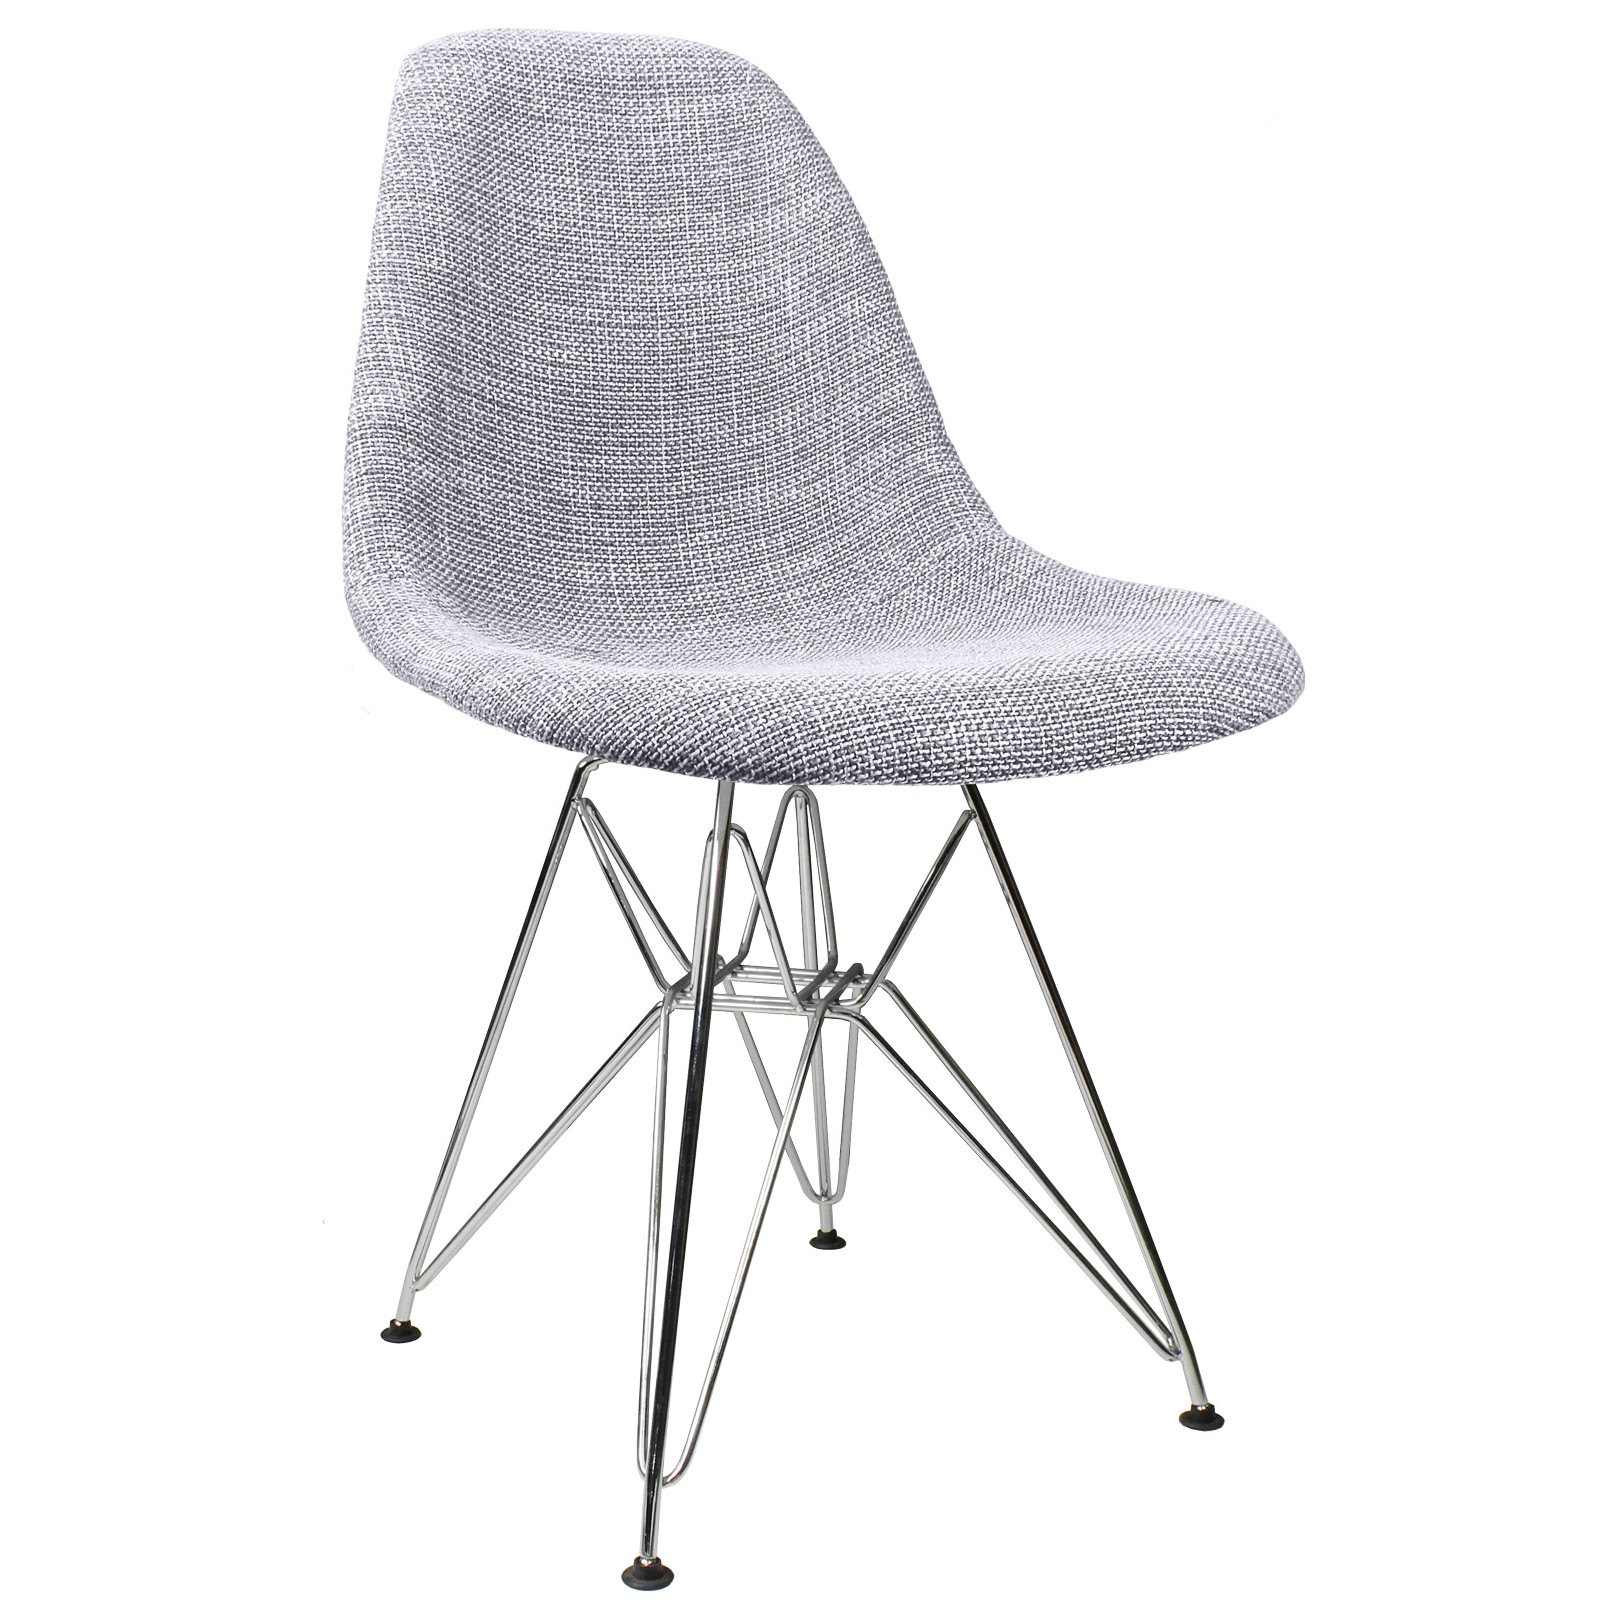 Fabulous Gray Woven Fabric Upholstered Mid Century Eames Style Accent Side Dining Chair Caraccident5 Cool Chair Designs And Ideas Caraccident5Info